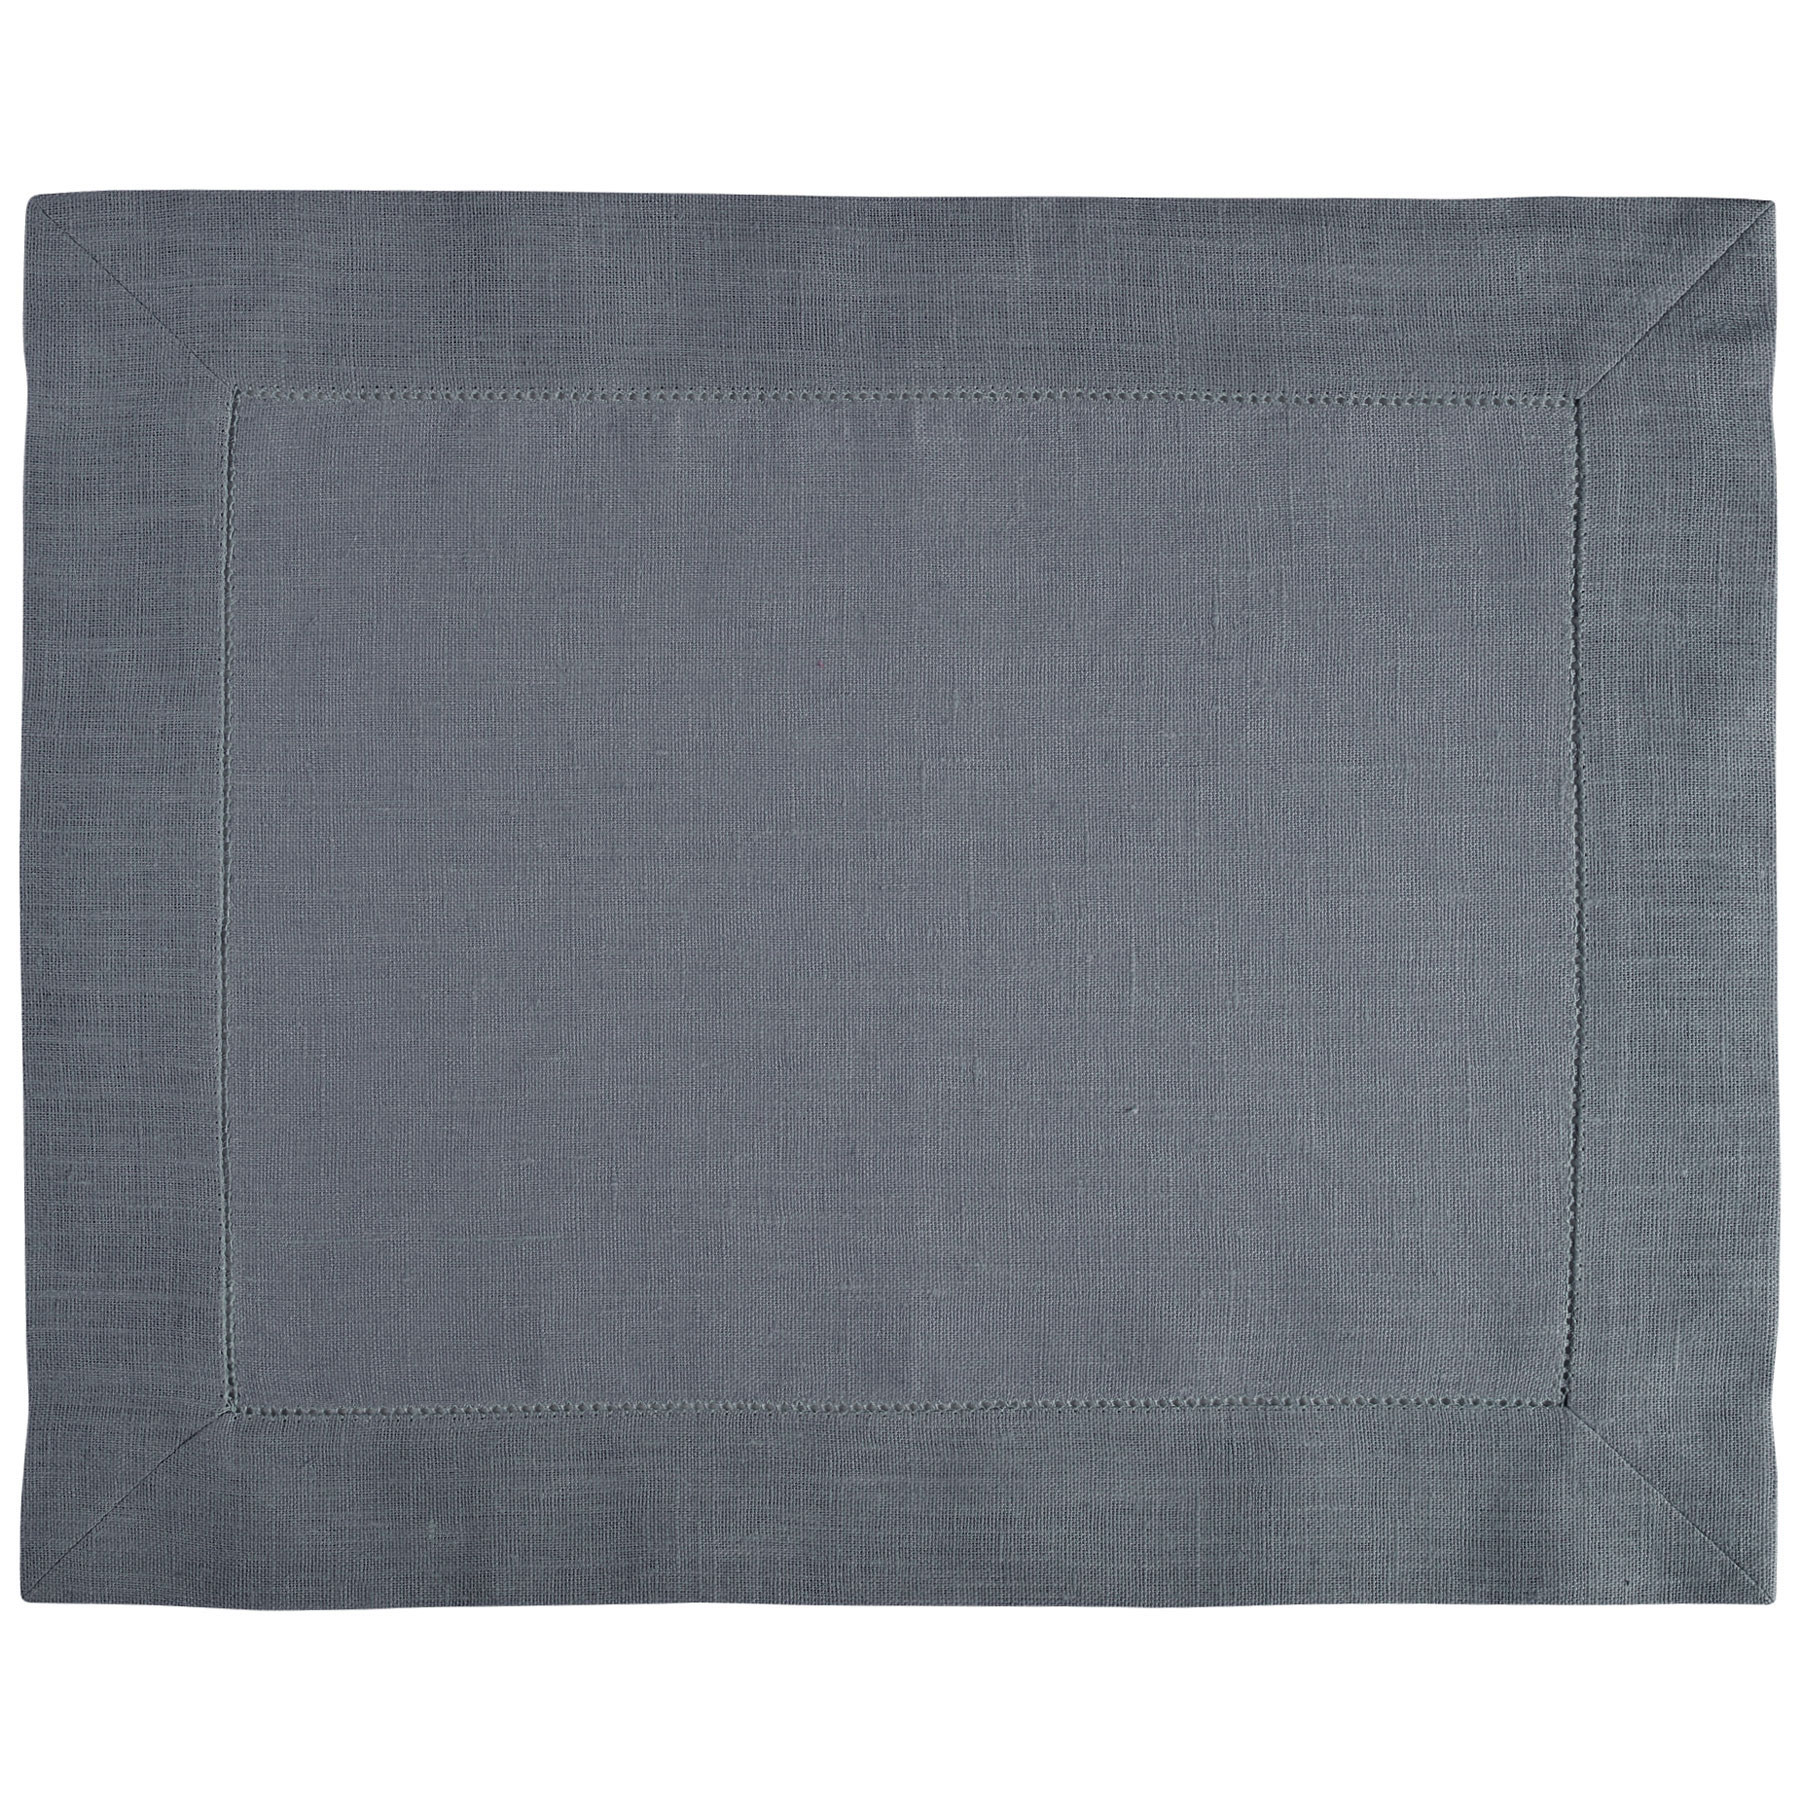 PLACEMAT <br />quicksilver gray